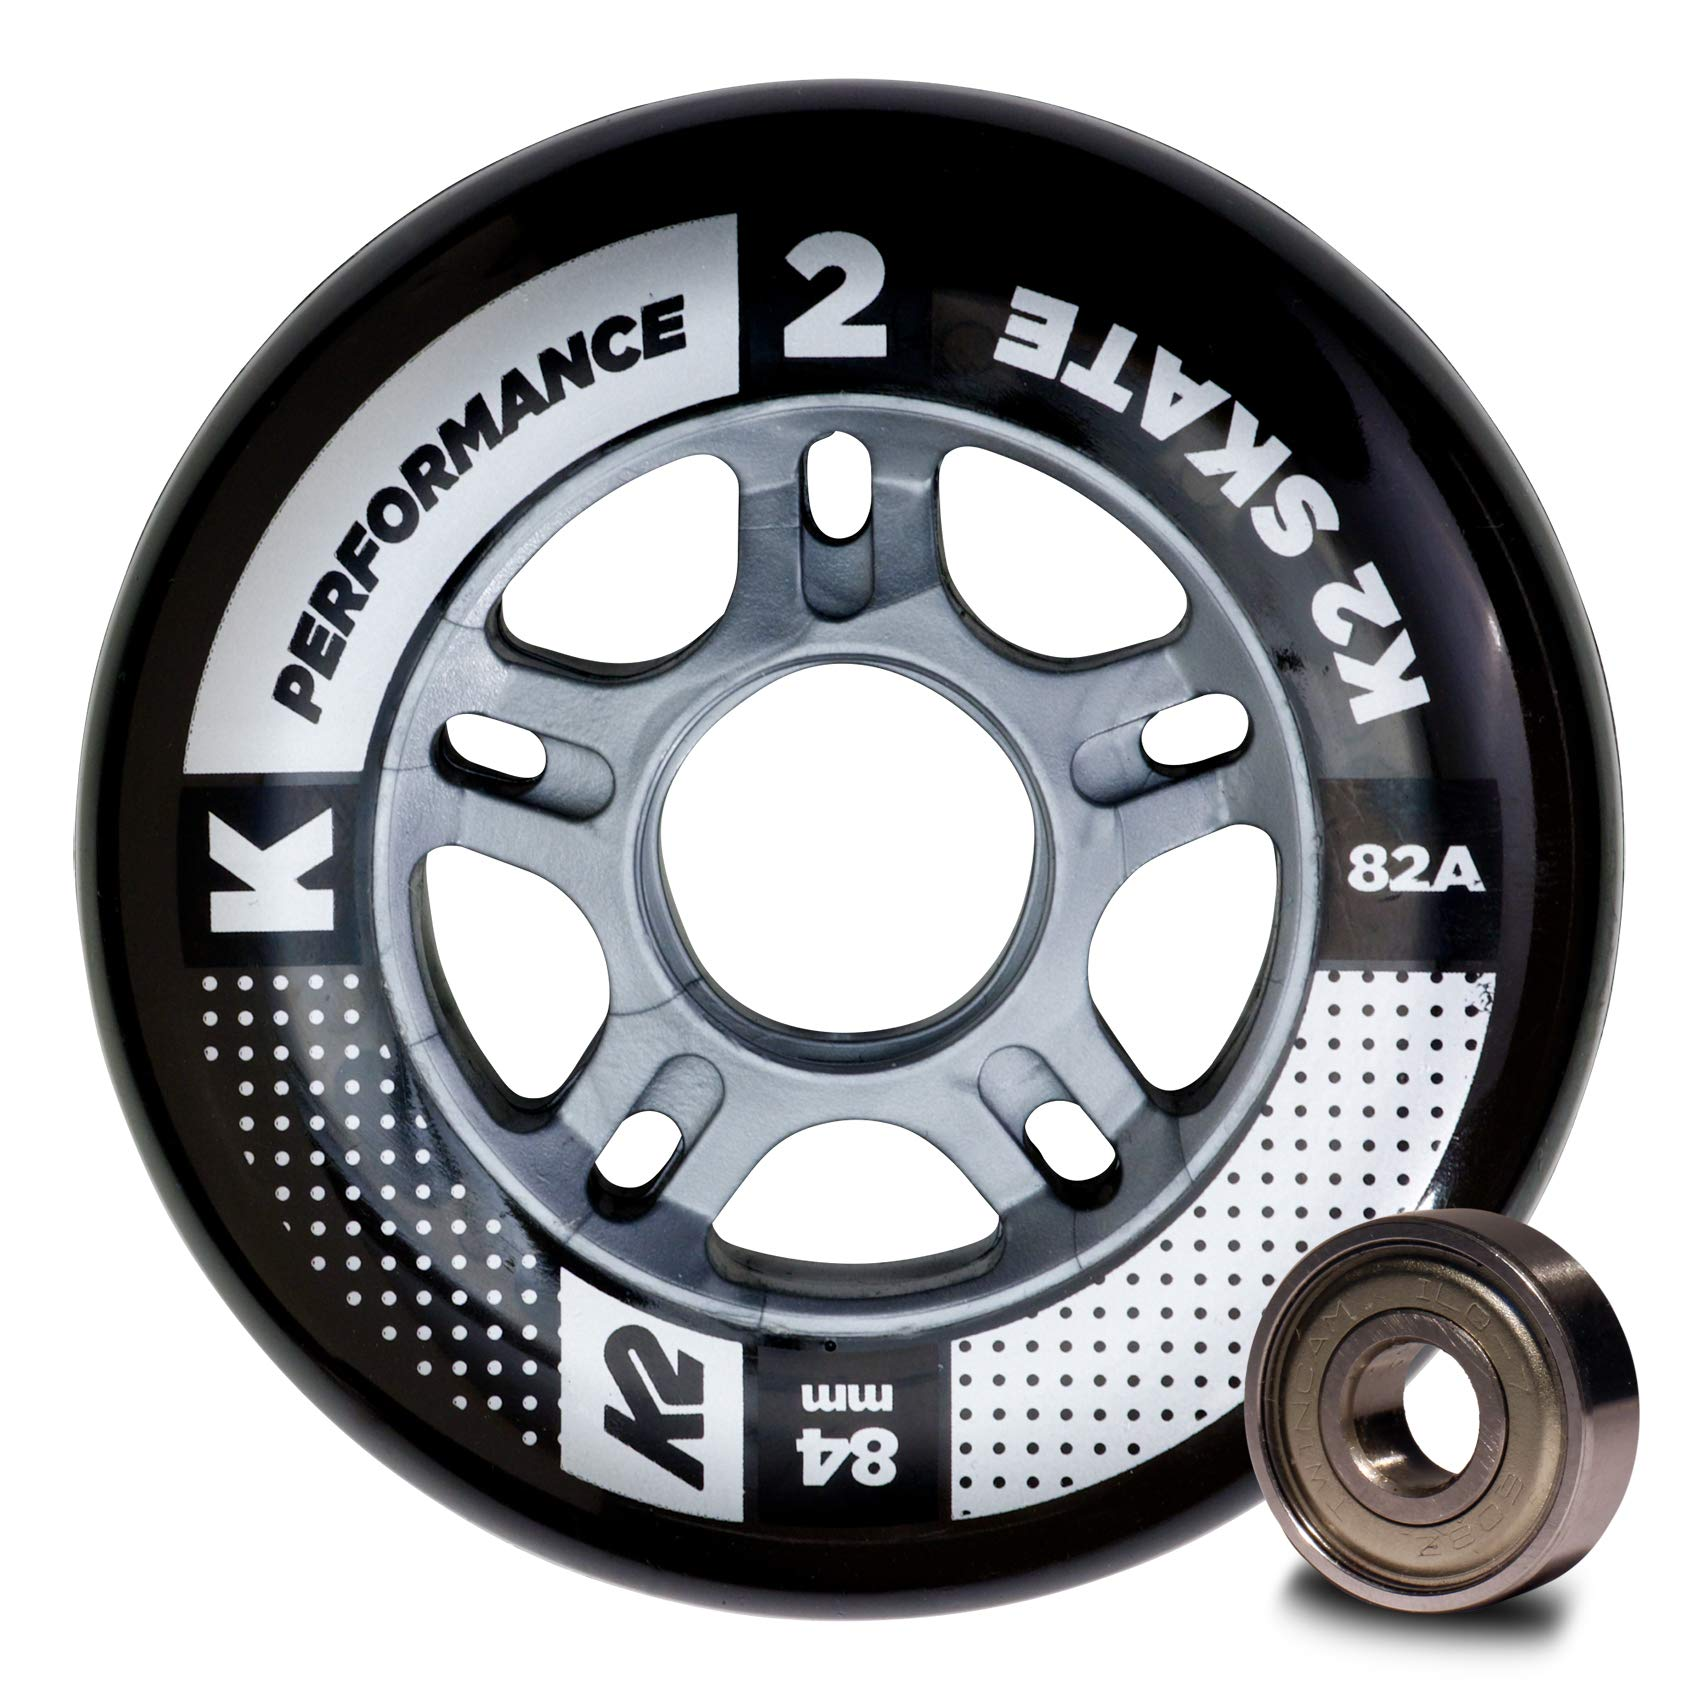 K2 Wheel Set 84 mm Performance Wheel 8-Pack/ILQ 7, Multicoloured, One Size, 30B3010.1.1.1SIZ